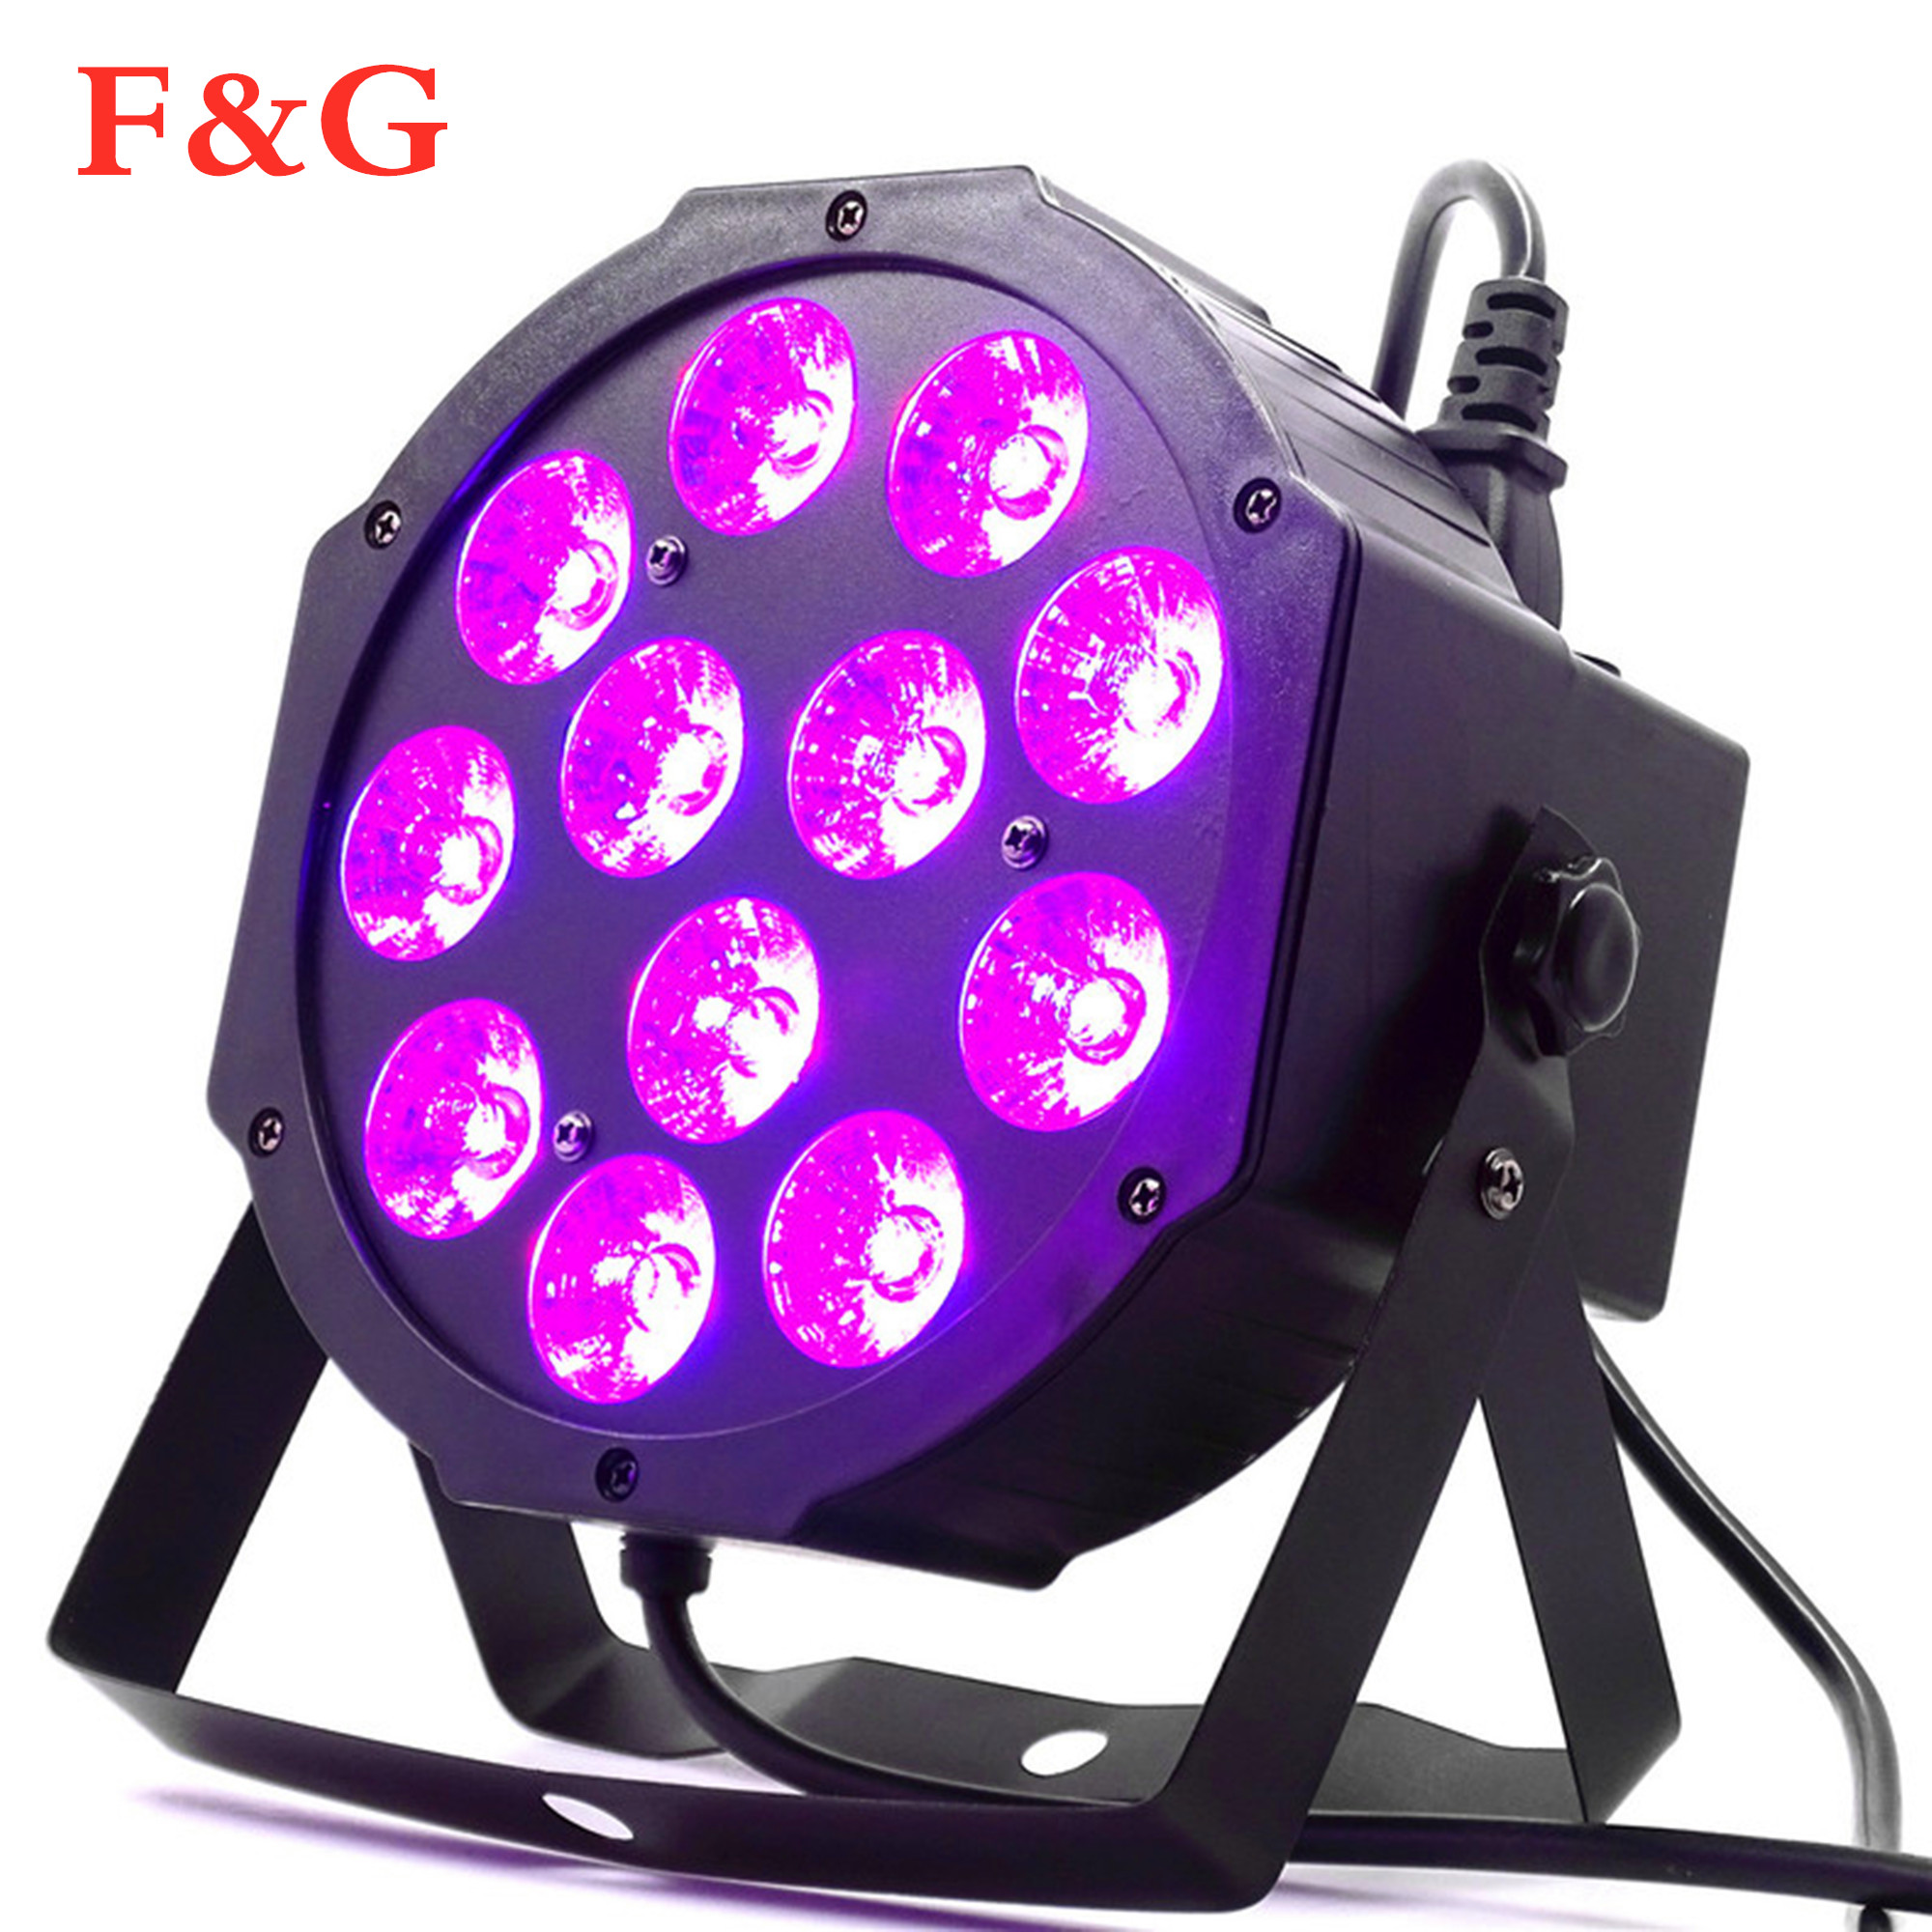 12x12W led Par nuestros productos incluyen pantallas 12 Uds 12w led lámpara kralen RGBW 4in1 par plana led dmx512 disco professioneel podio dj apparatuur